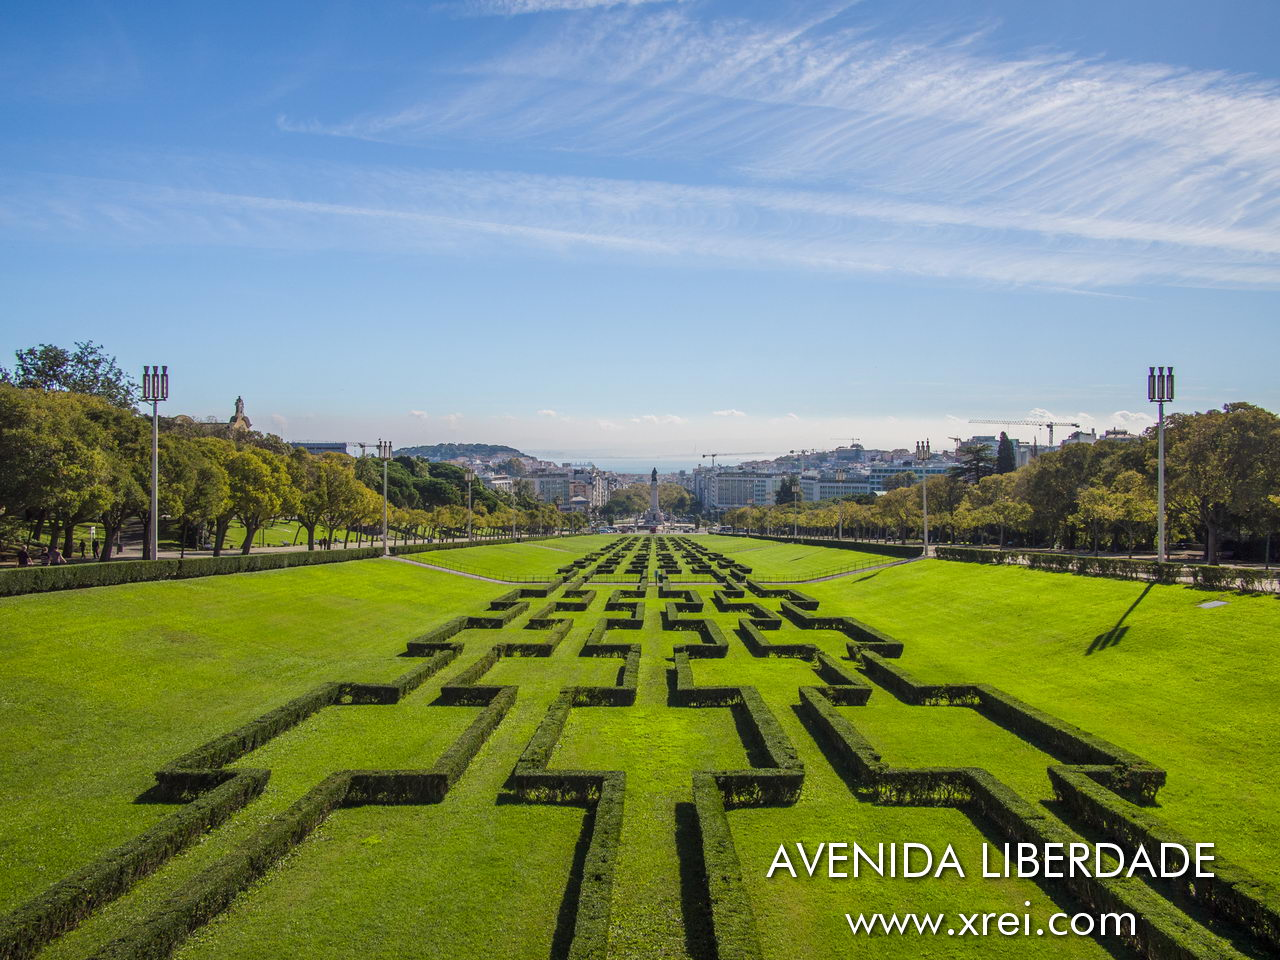 Parque Eduardo VII is the largest green park in Lisbon and one of the most sought-after viewpoints in Lisbon, located north of the Marquês de Pombal roundabout